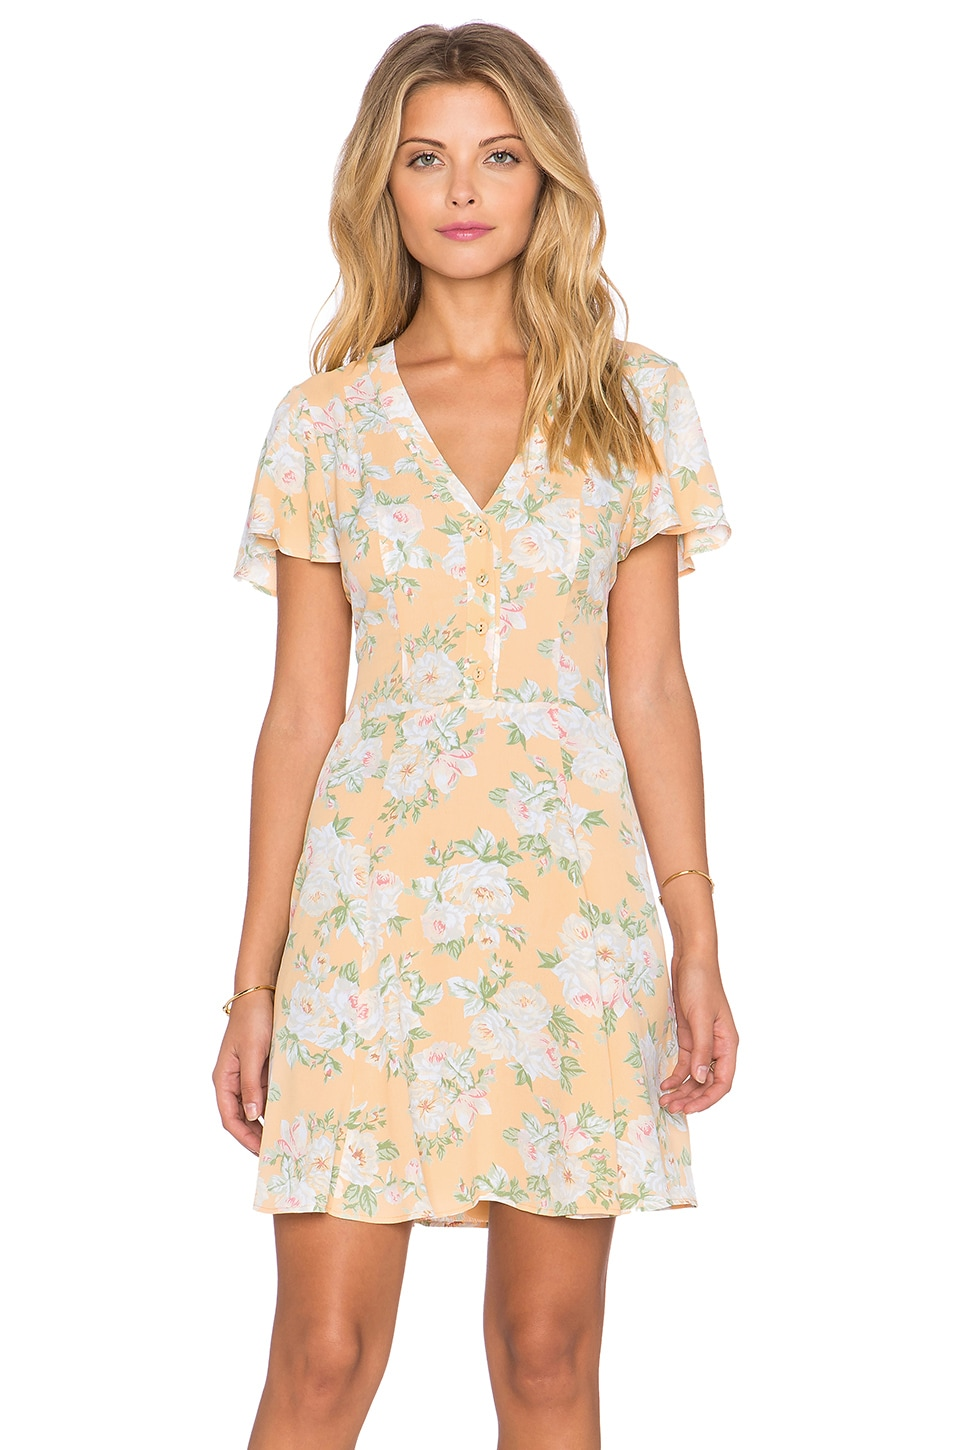 Privacy Please Amsterdam Mini Dress in Flore